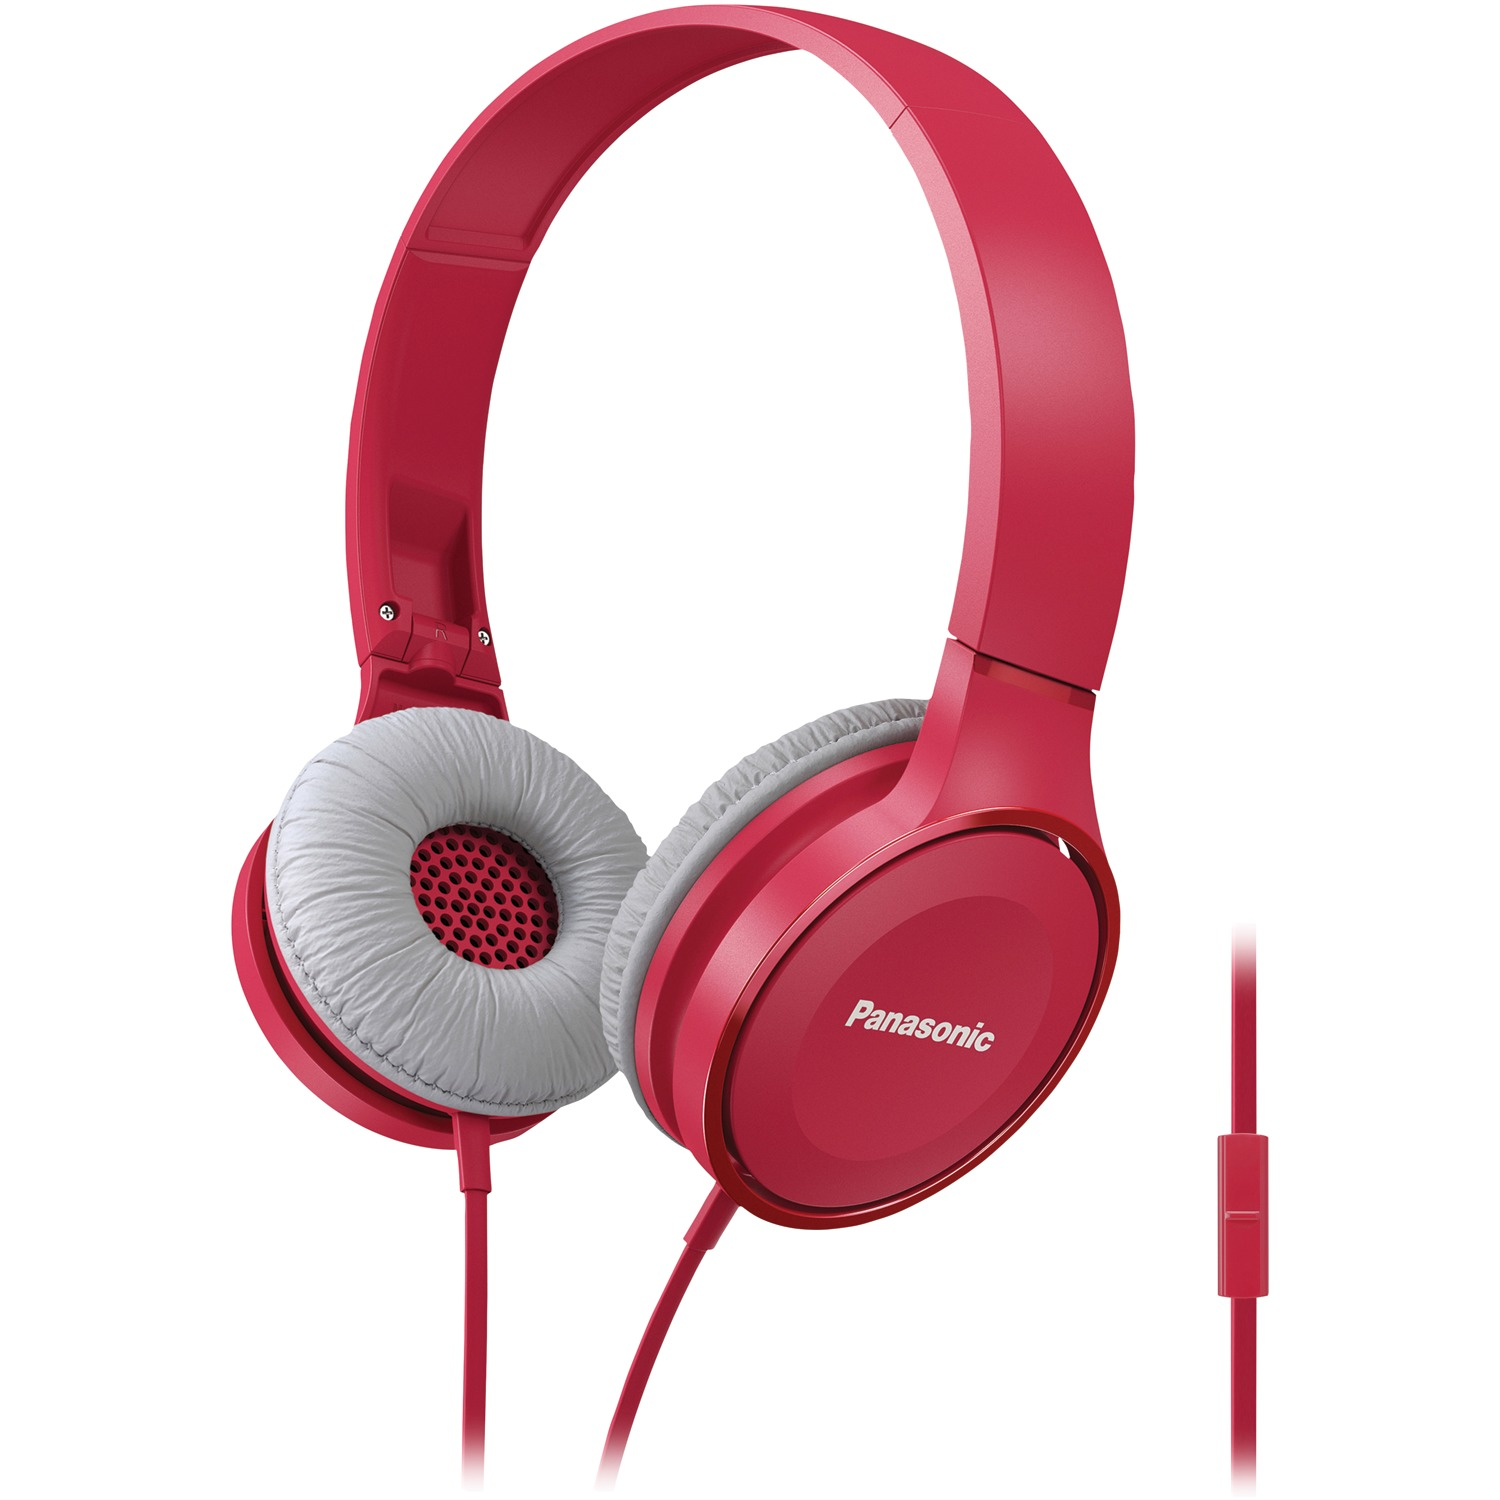 Panasonic RP-HF100M-P Panasonic Lightweight On-Ear Headphones With Microphone (Pink)